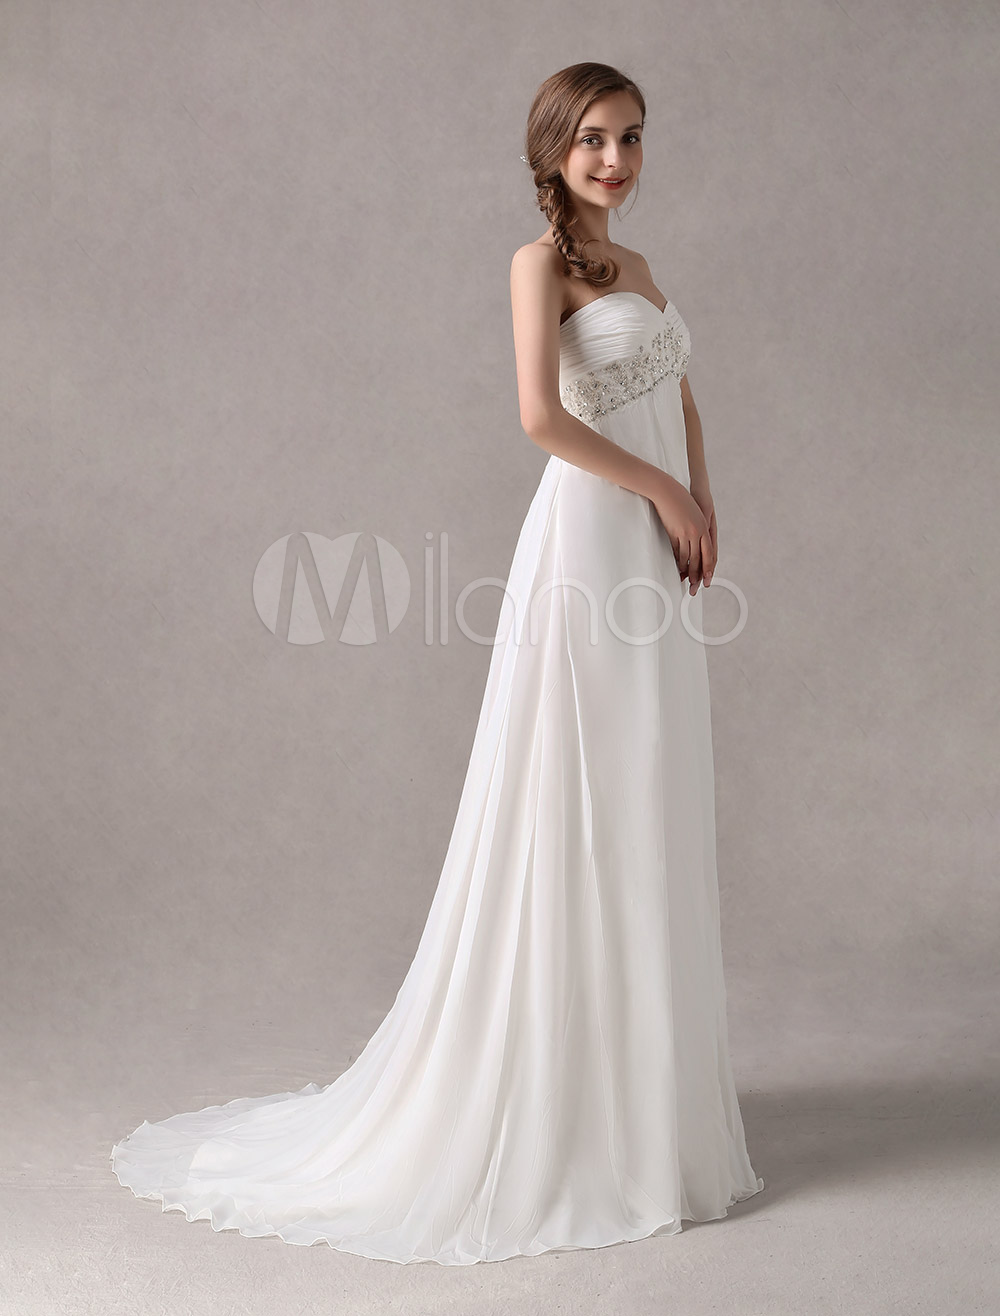 Sweep Ivory Chiffon Wedding Dress with Empire Waist